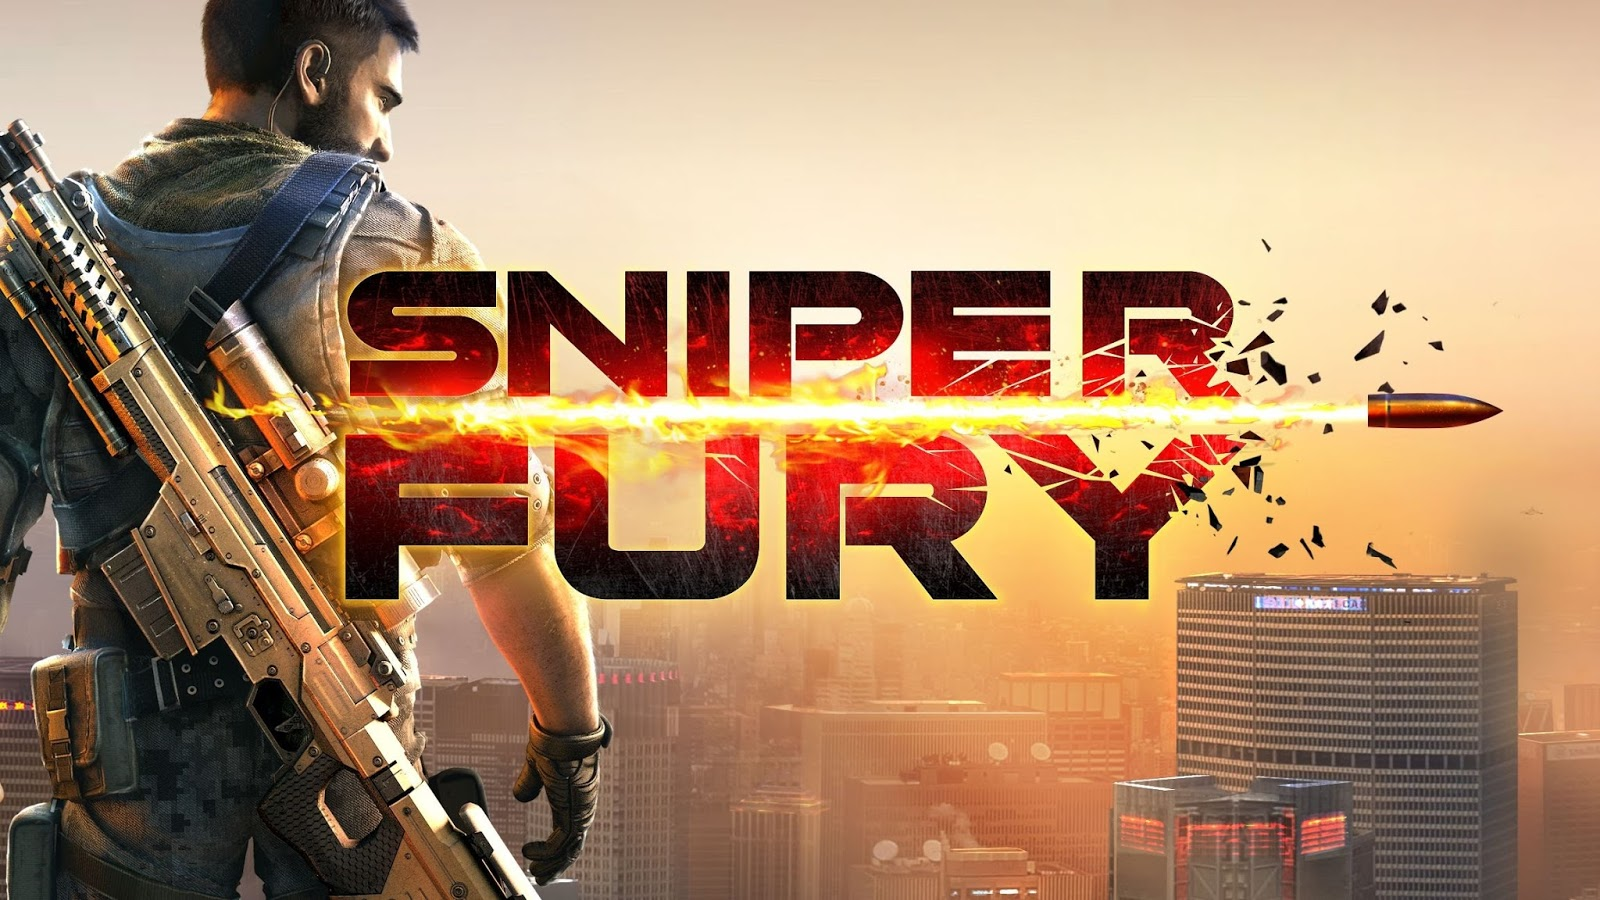 sniper fury apk mod android download